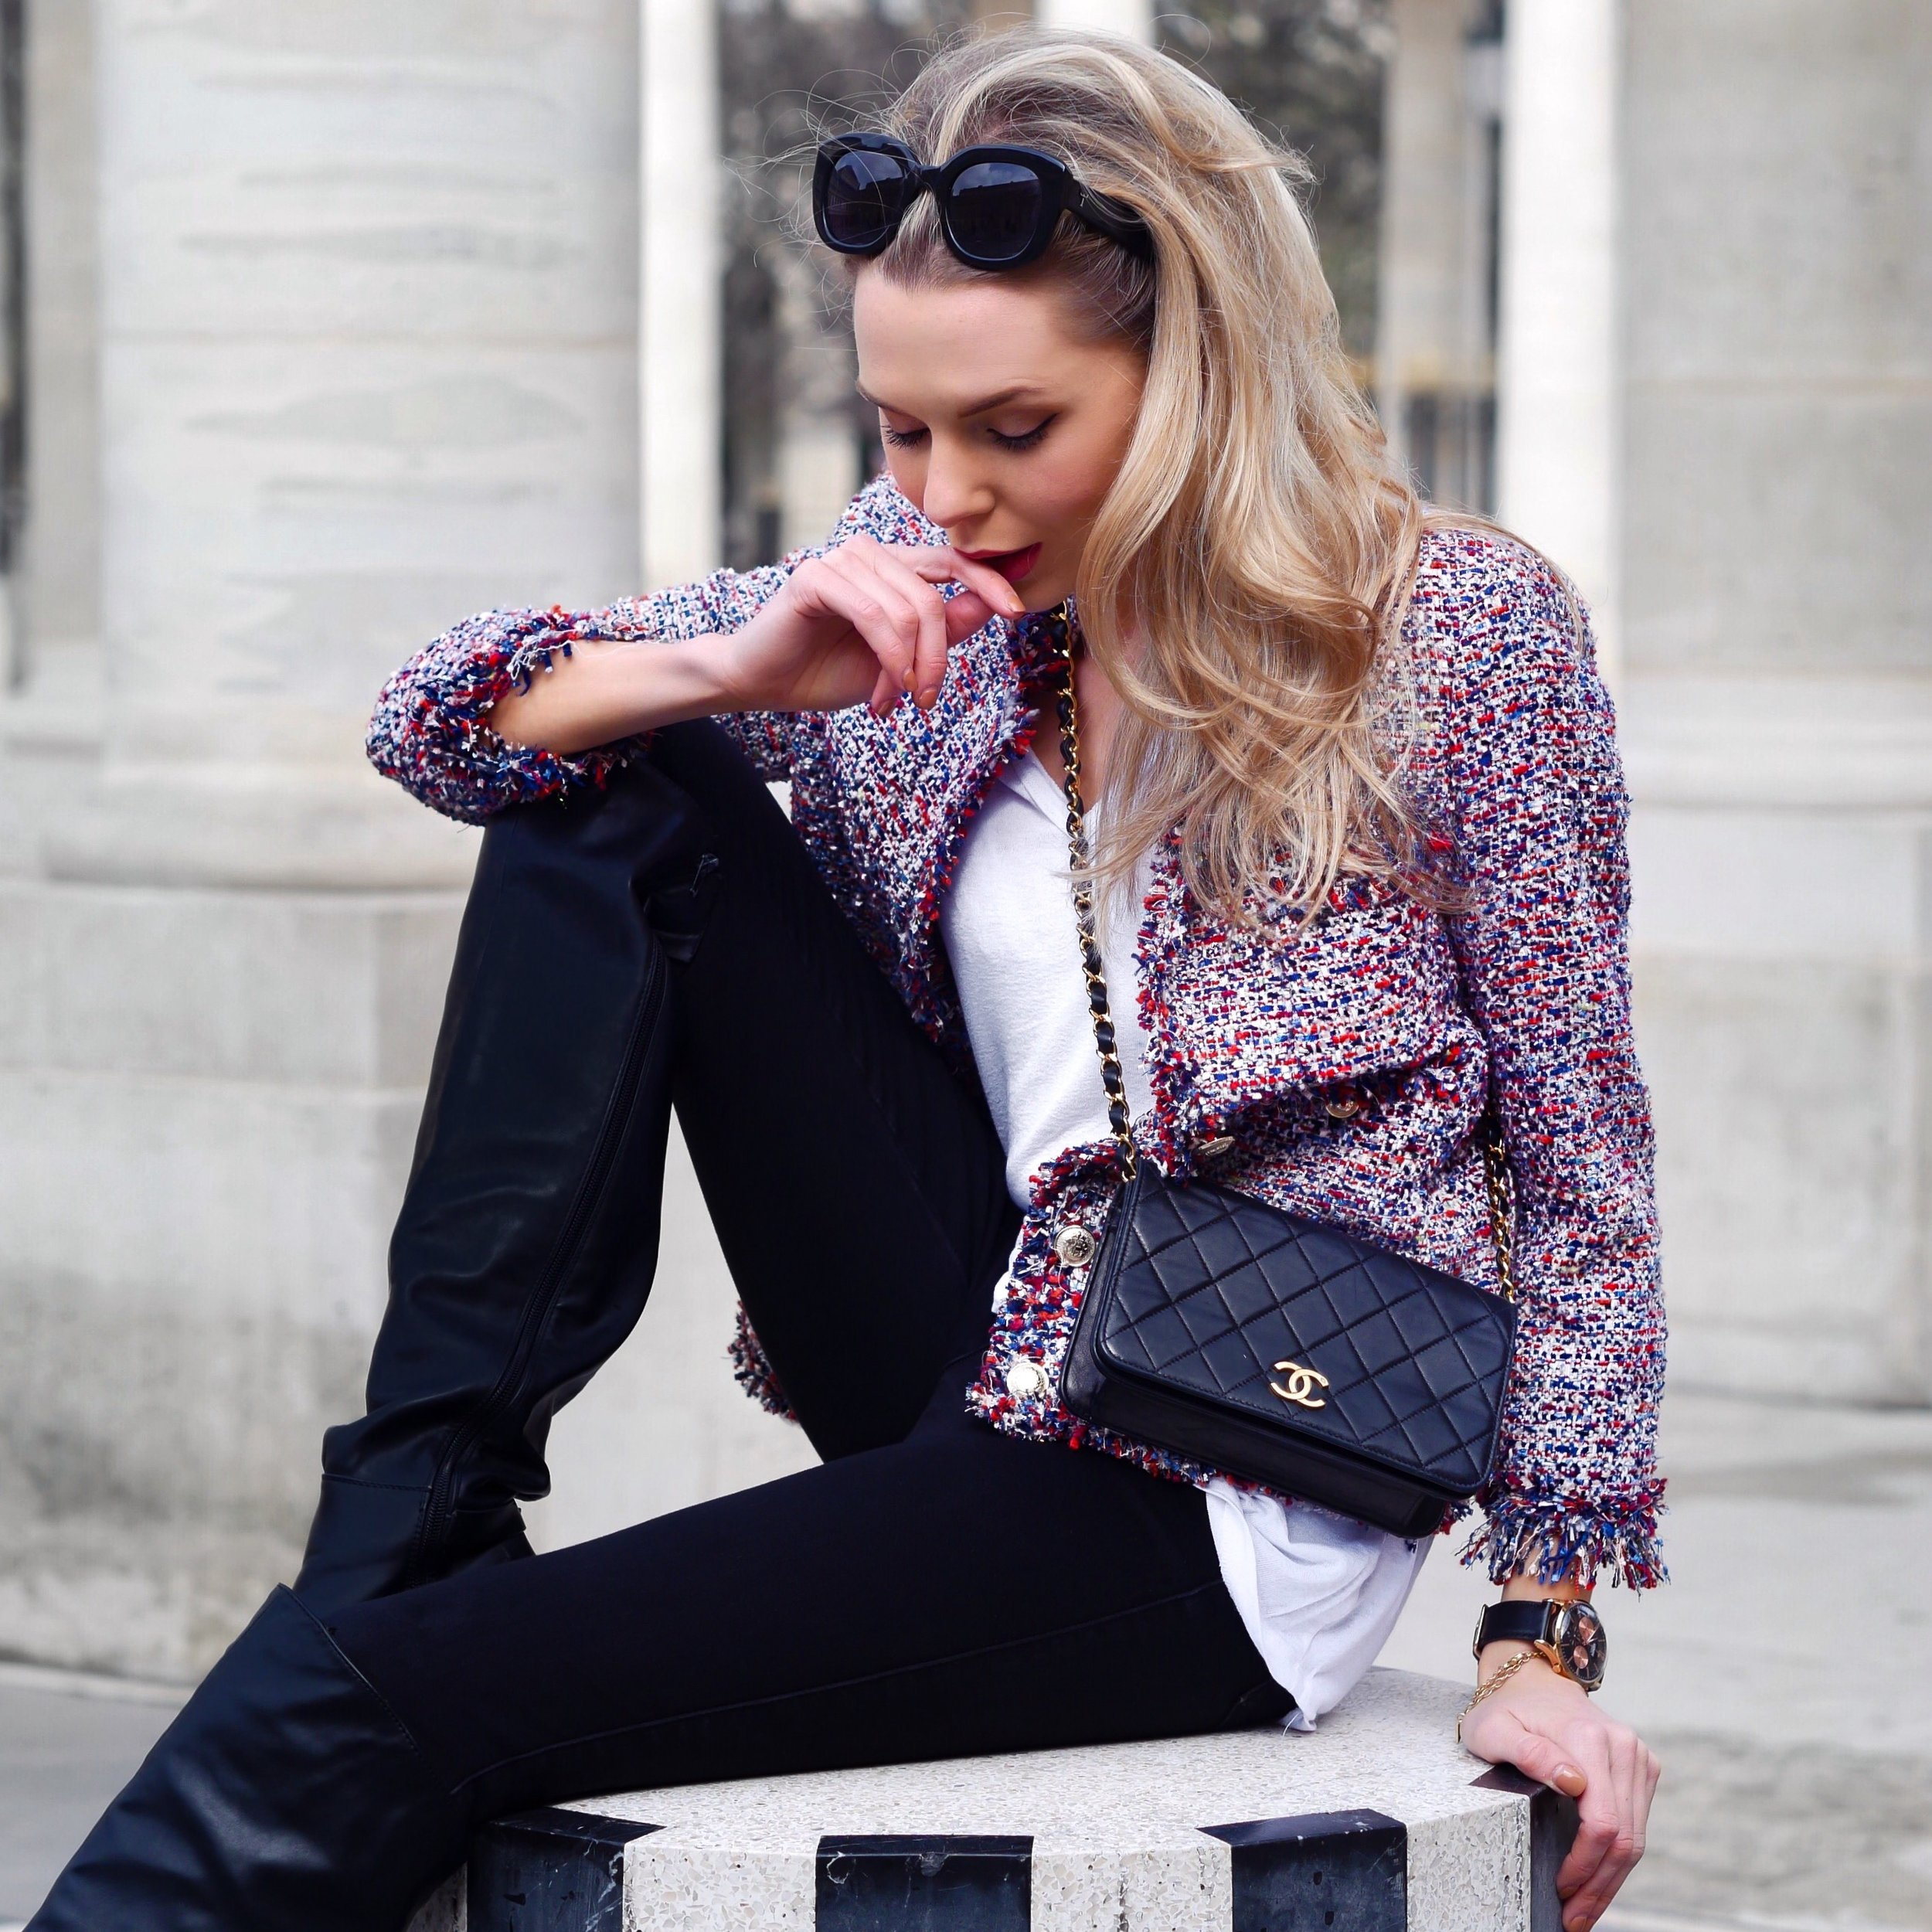 paris, travel, haul, affordable fashion, streetstyle, inspiration, what to wear, fashion, lookbook, style, fashion blogger, laura blair, youtuber, london fashion girl, HOTEL HÔTEL THÉRÈSE